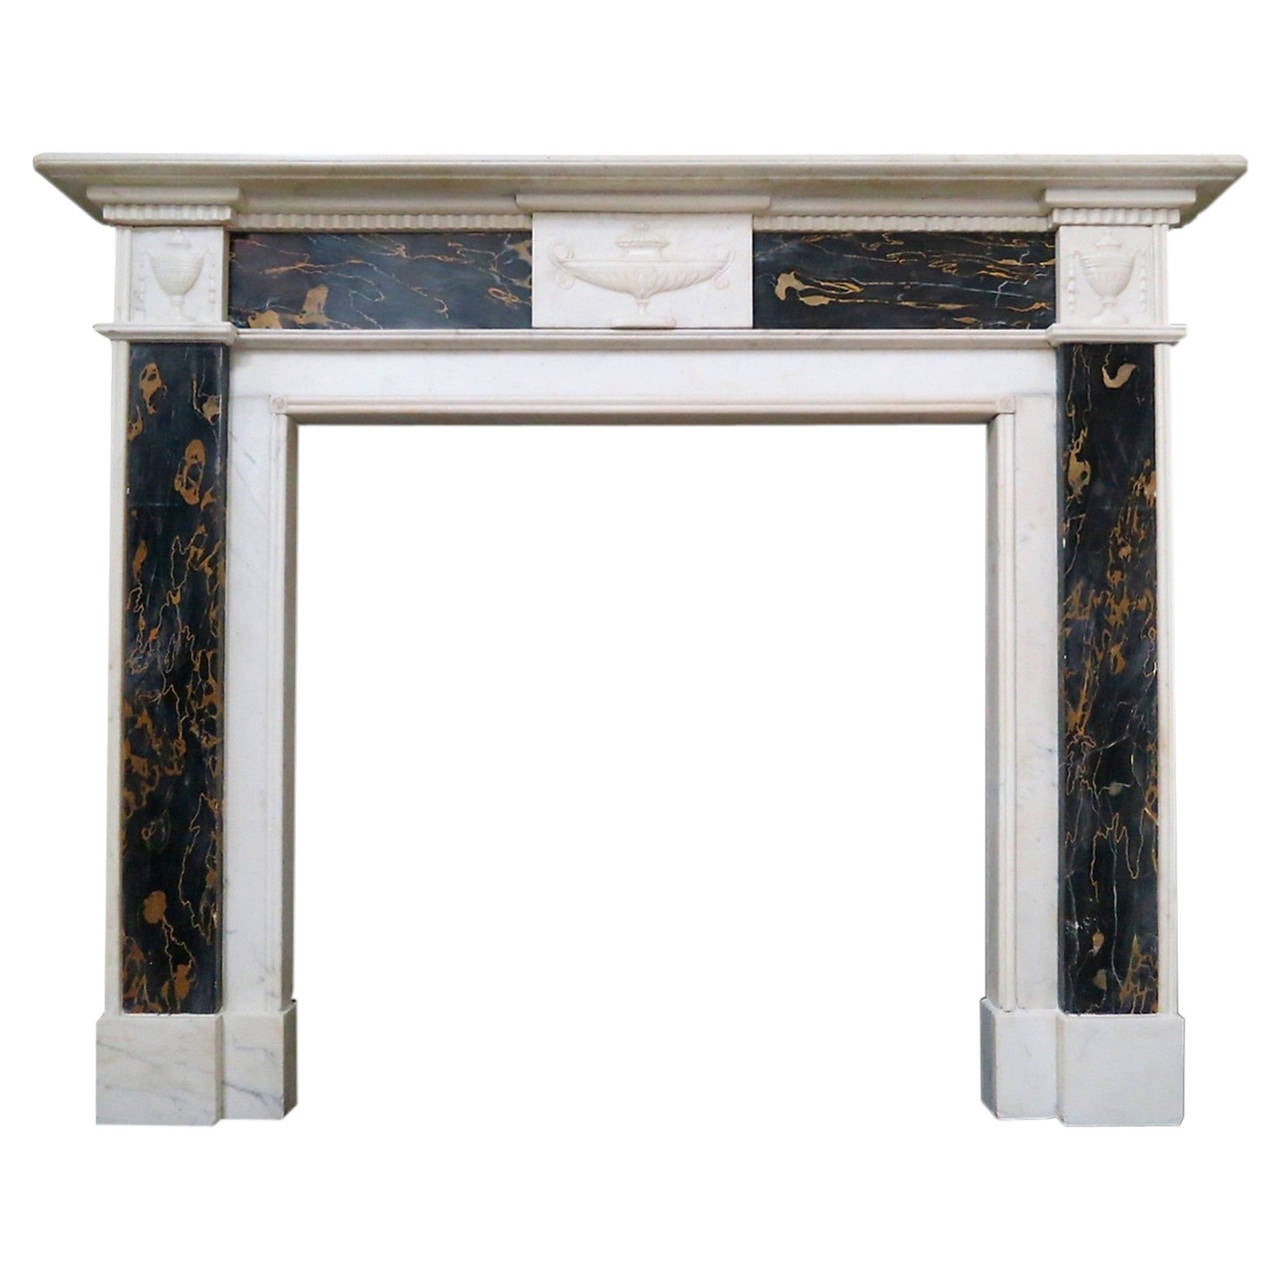 Antique Regency Period Statuary White and Portoro Marble Fireplace Mantel